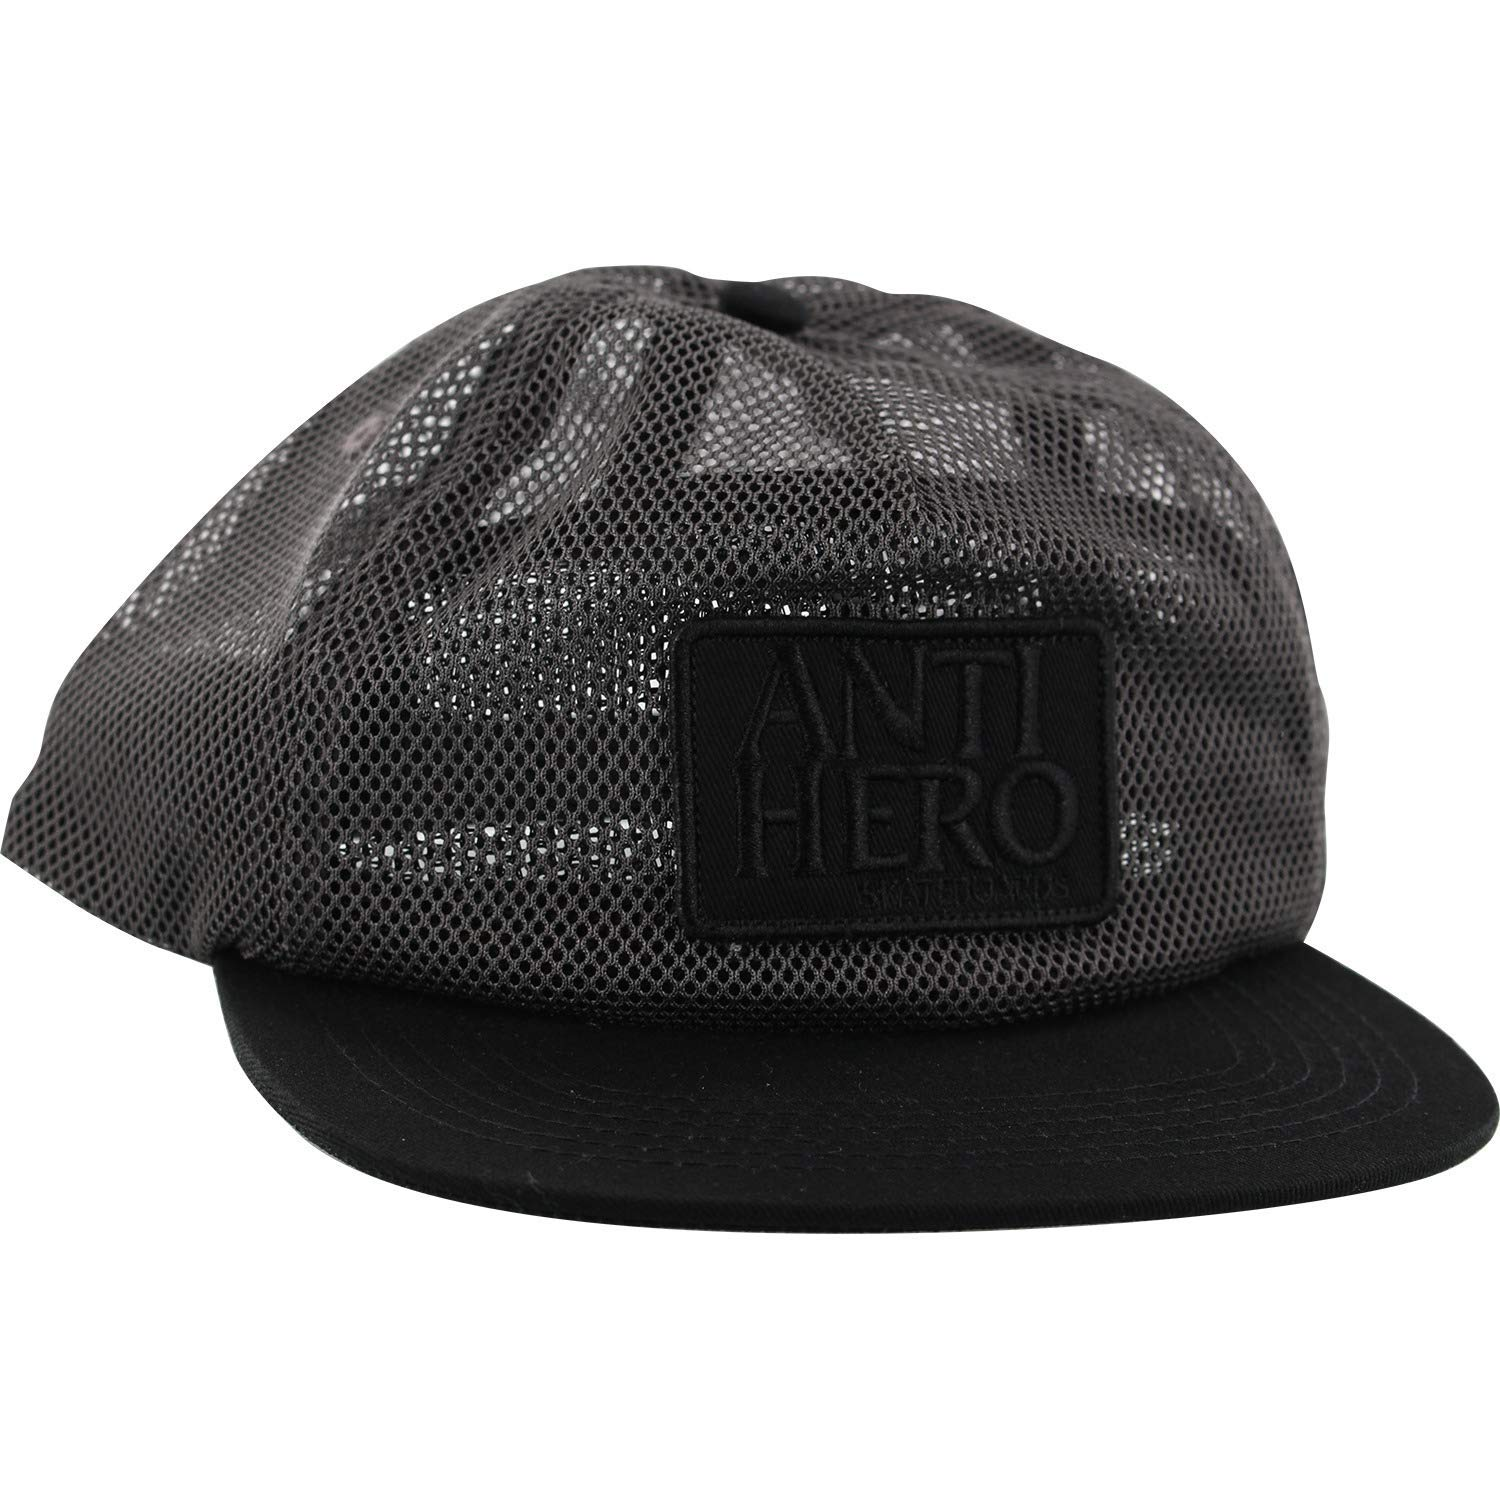 86222c833c8 Get Quotations · Anti Hero Skateboards Reserve Charcoal Black Mesh Trucker  Hat - Adjustable